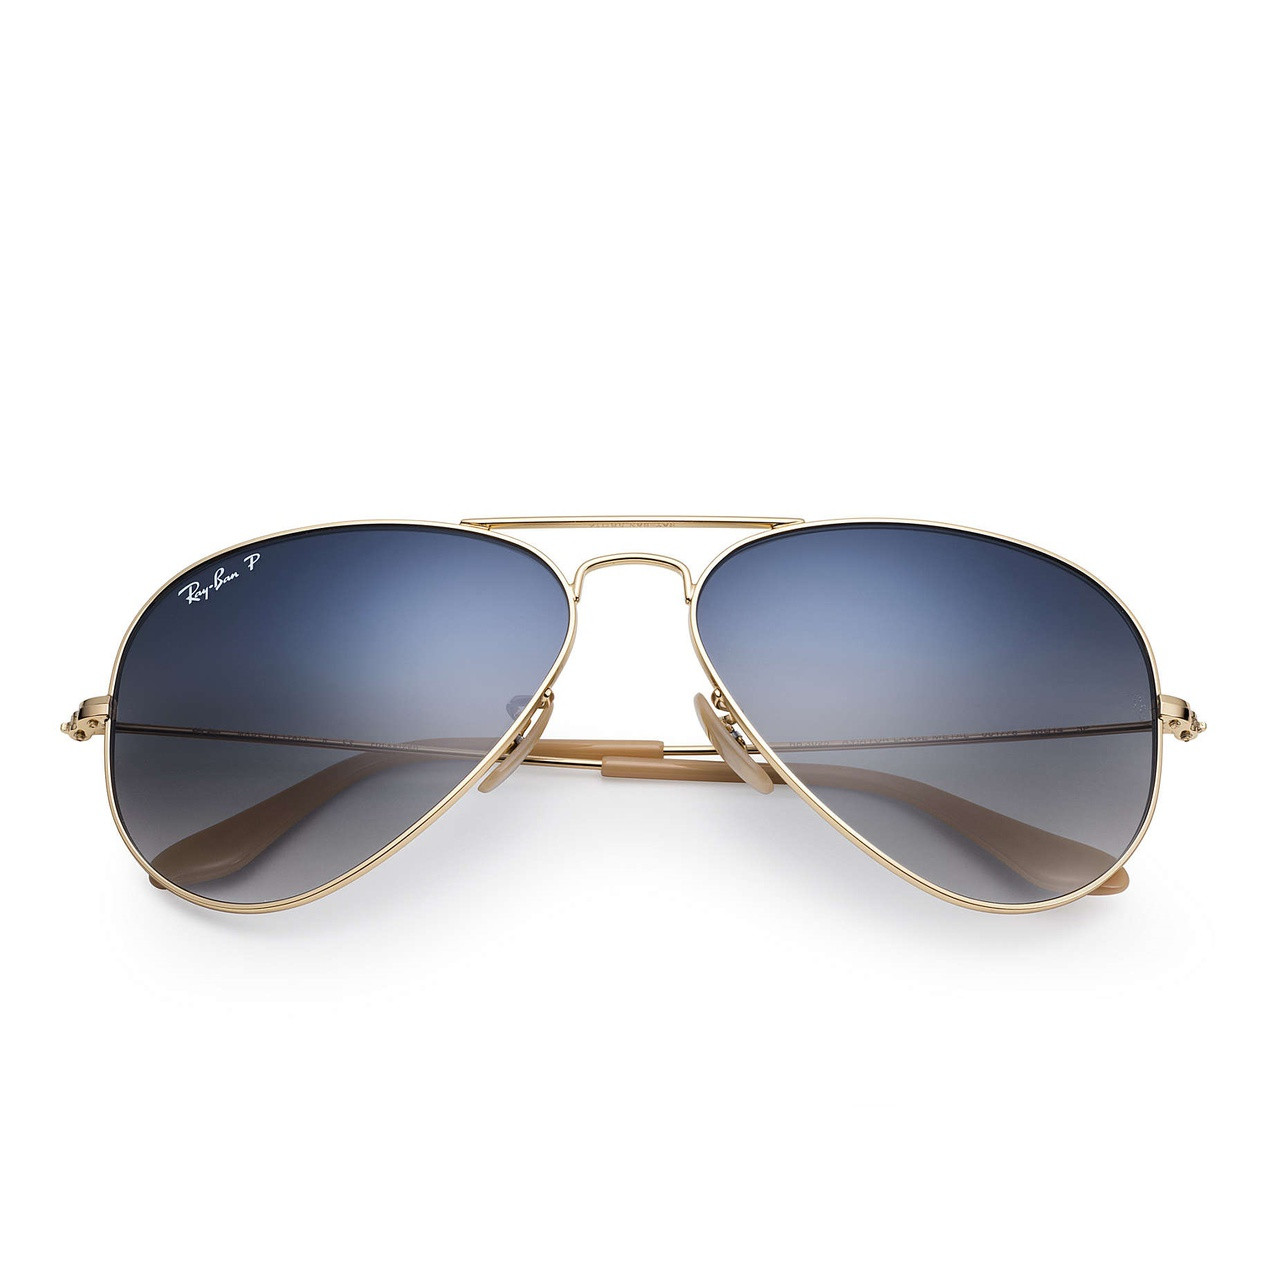 74503ec7c Ray-Ban Adult Polarized Aviator Sunglasses   CONDEMNED TO BE FREE